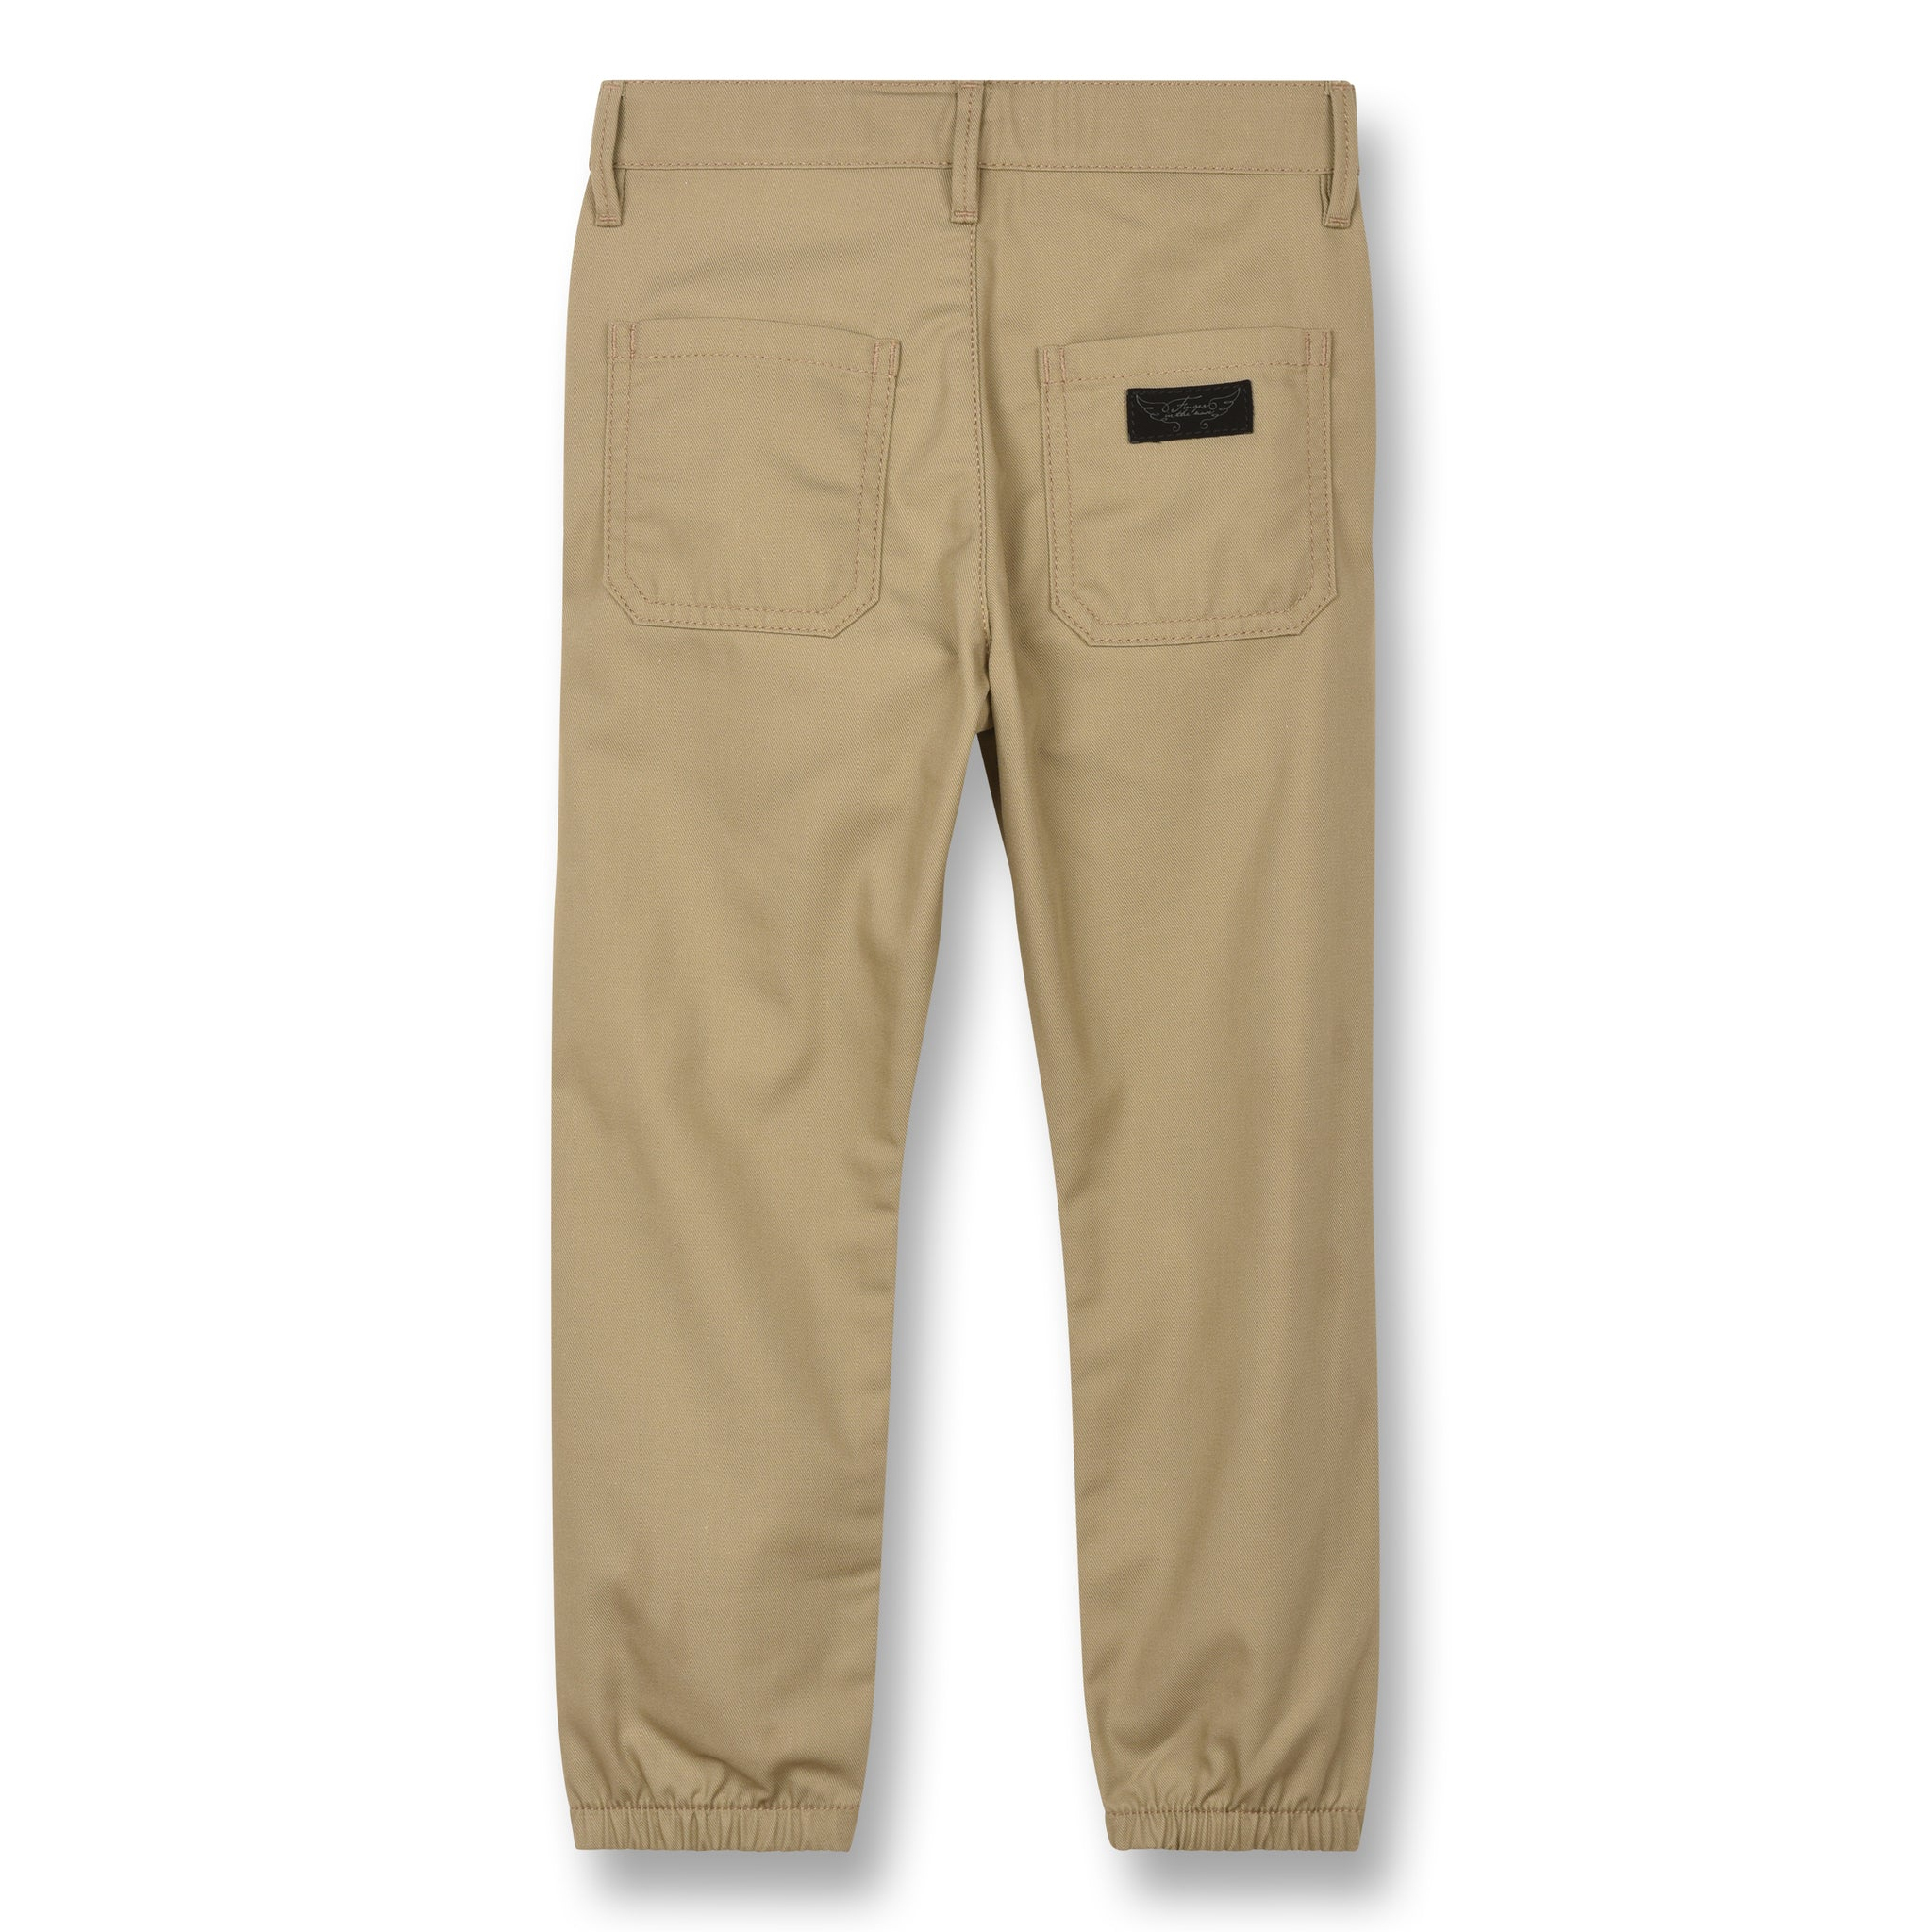 SKATER Linen - Elasticed Bottom Chino Fit Pants 2